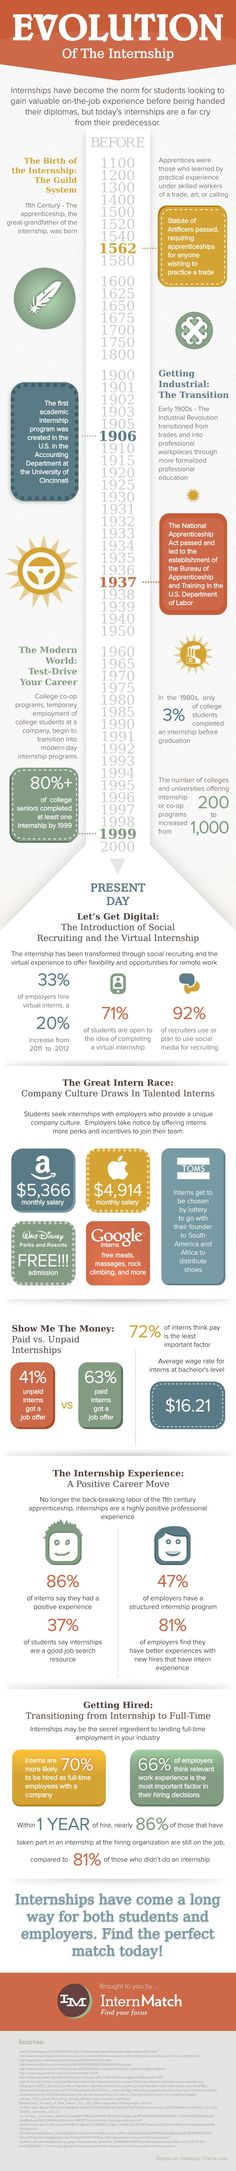 Why Internships Are Worth It #infographic